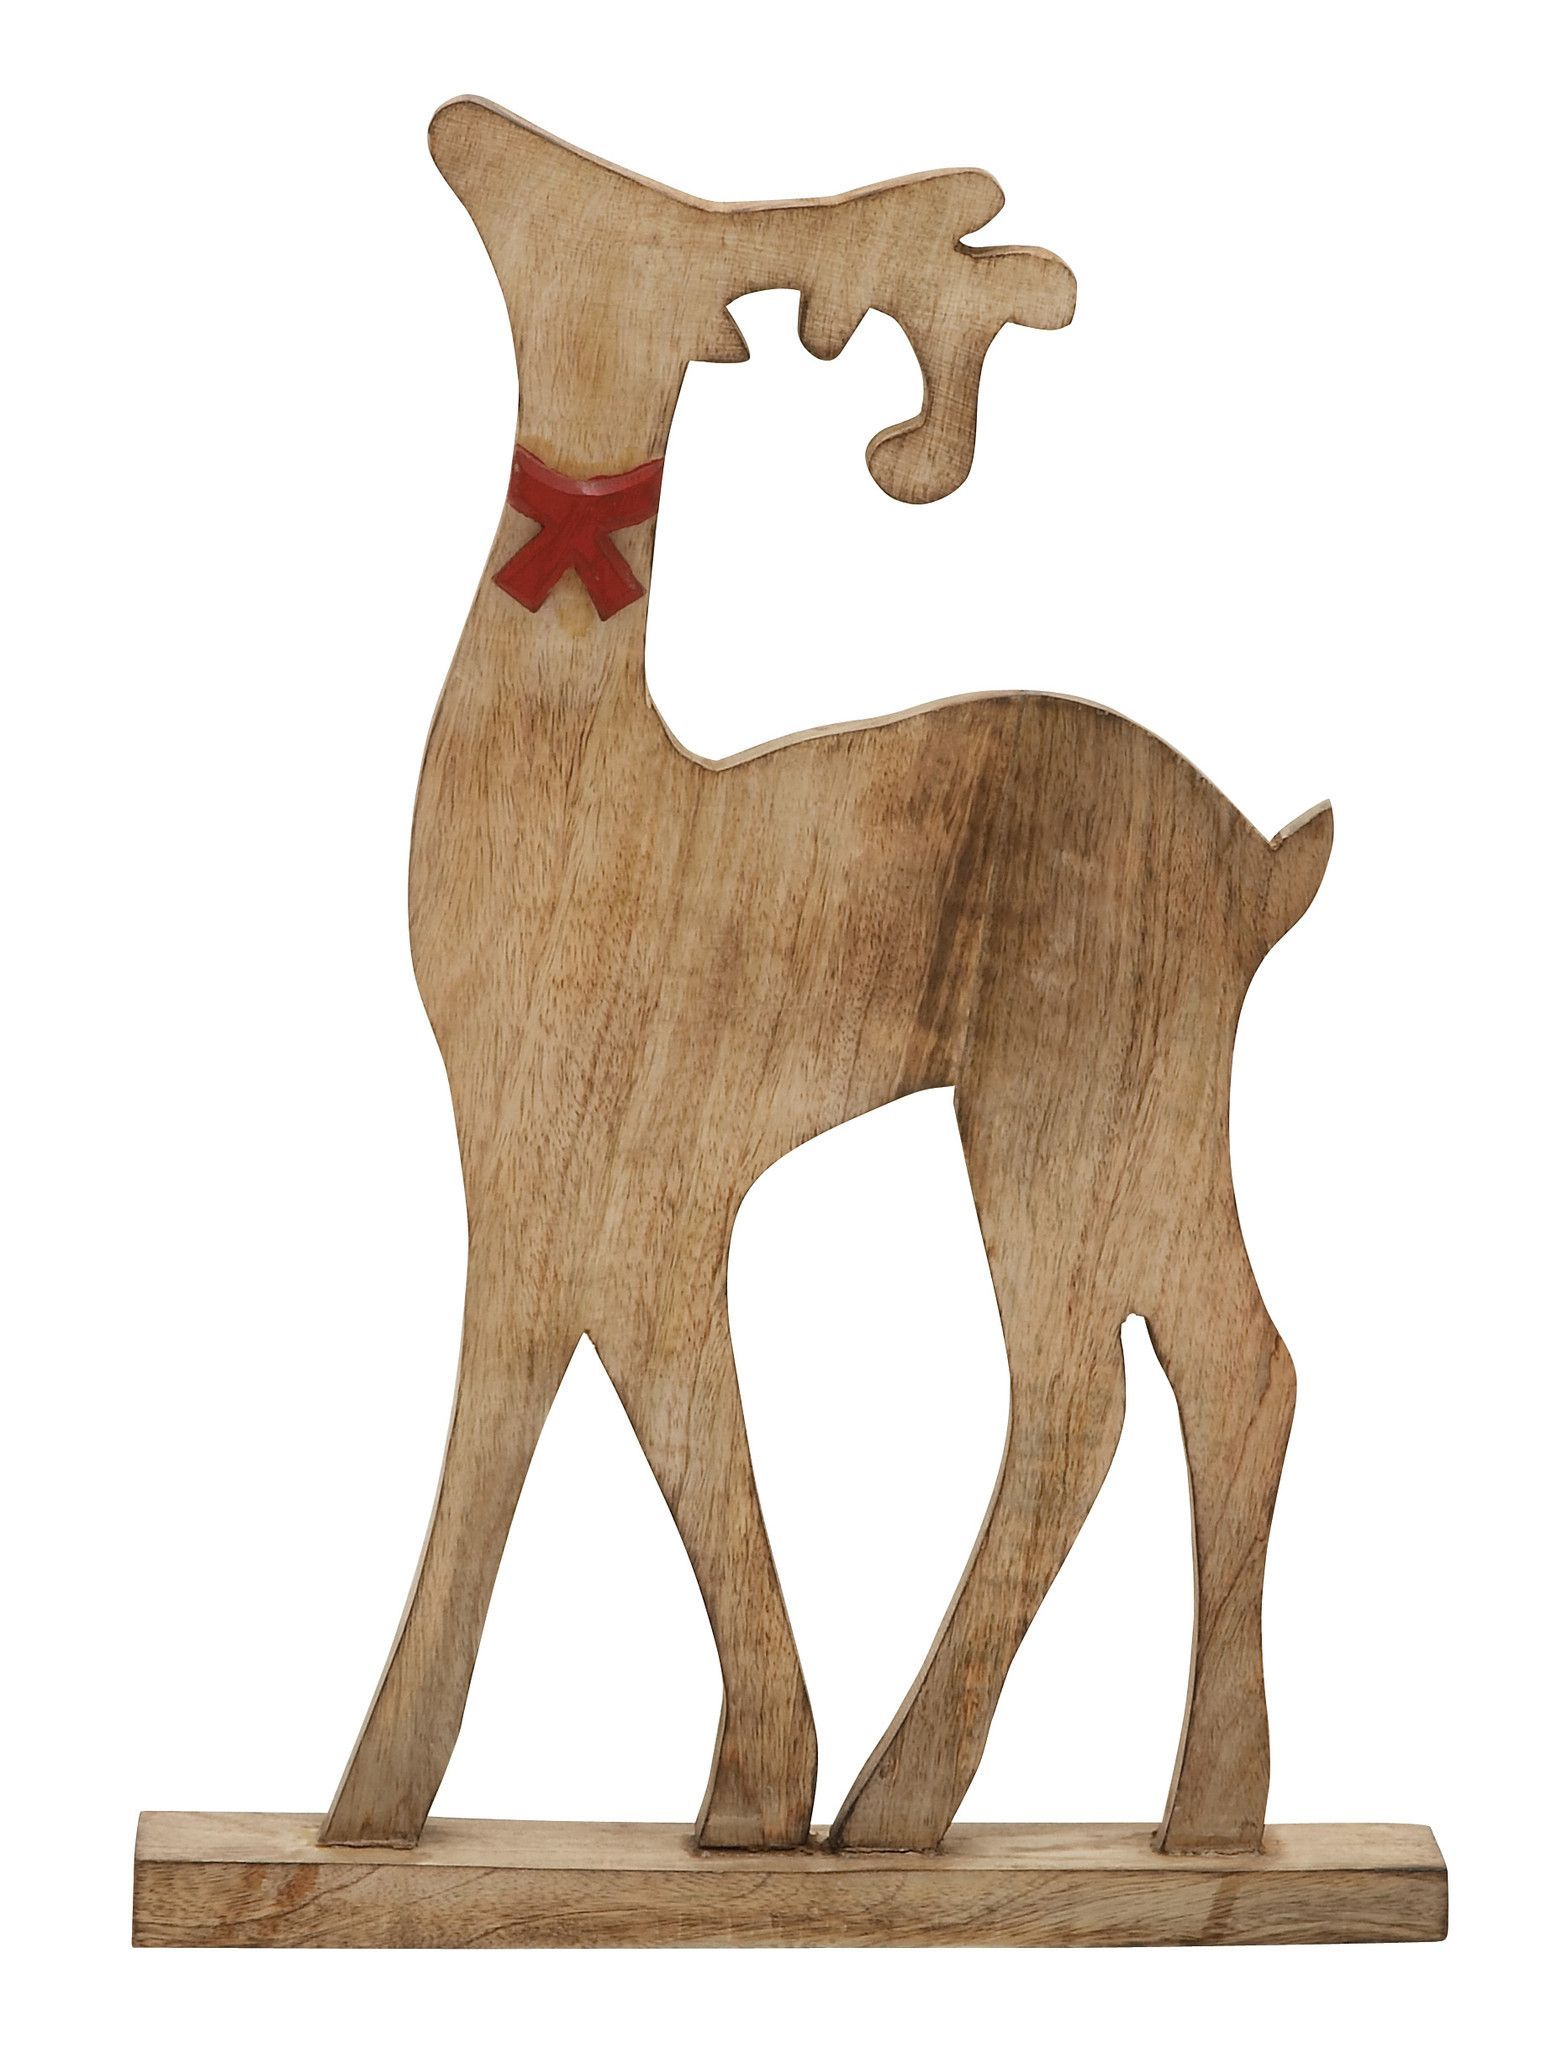 Features - Product measures (inches): 16X3X23 - Made From Wood - Great Home D'cor Addition Description: For ones who adore reindeer and like them making a part of their home interiors, this is what we